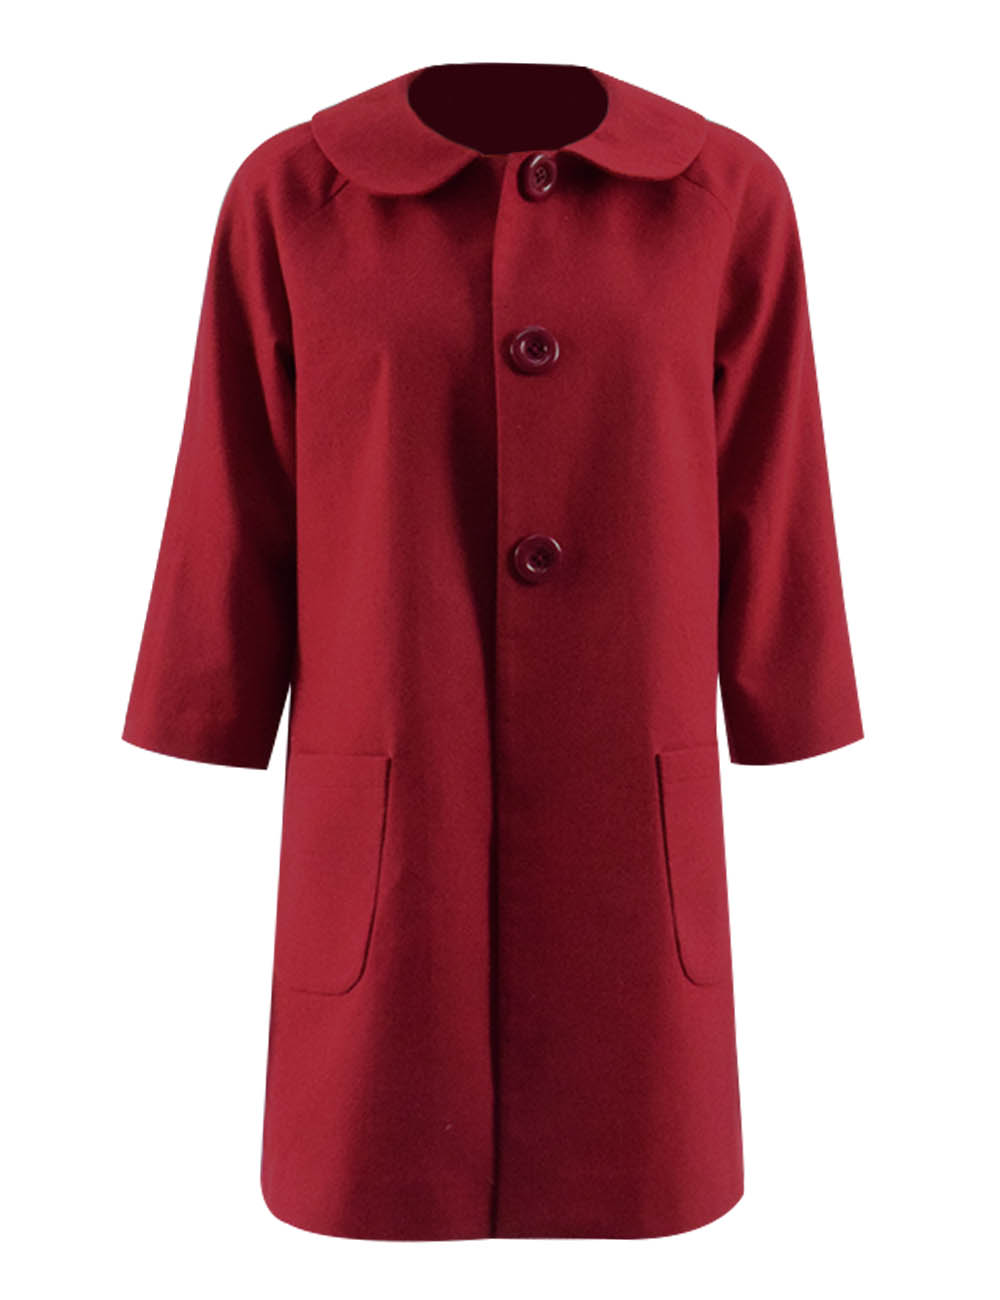 Chilling Adventures of Sabrina Cosplay Costume Sabrina Spellma Red Jacket Coat